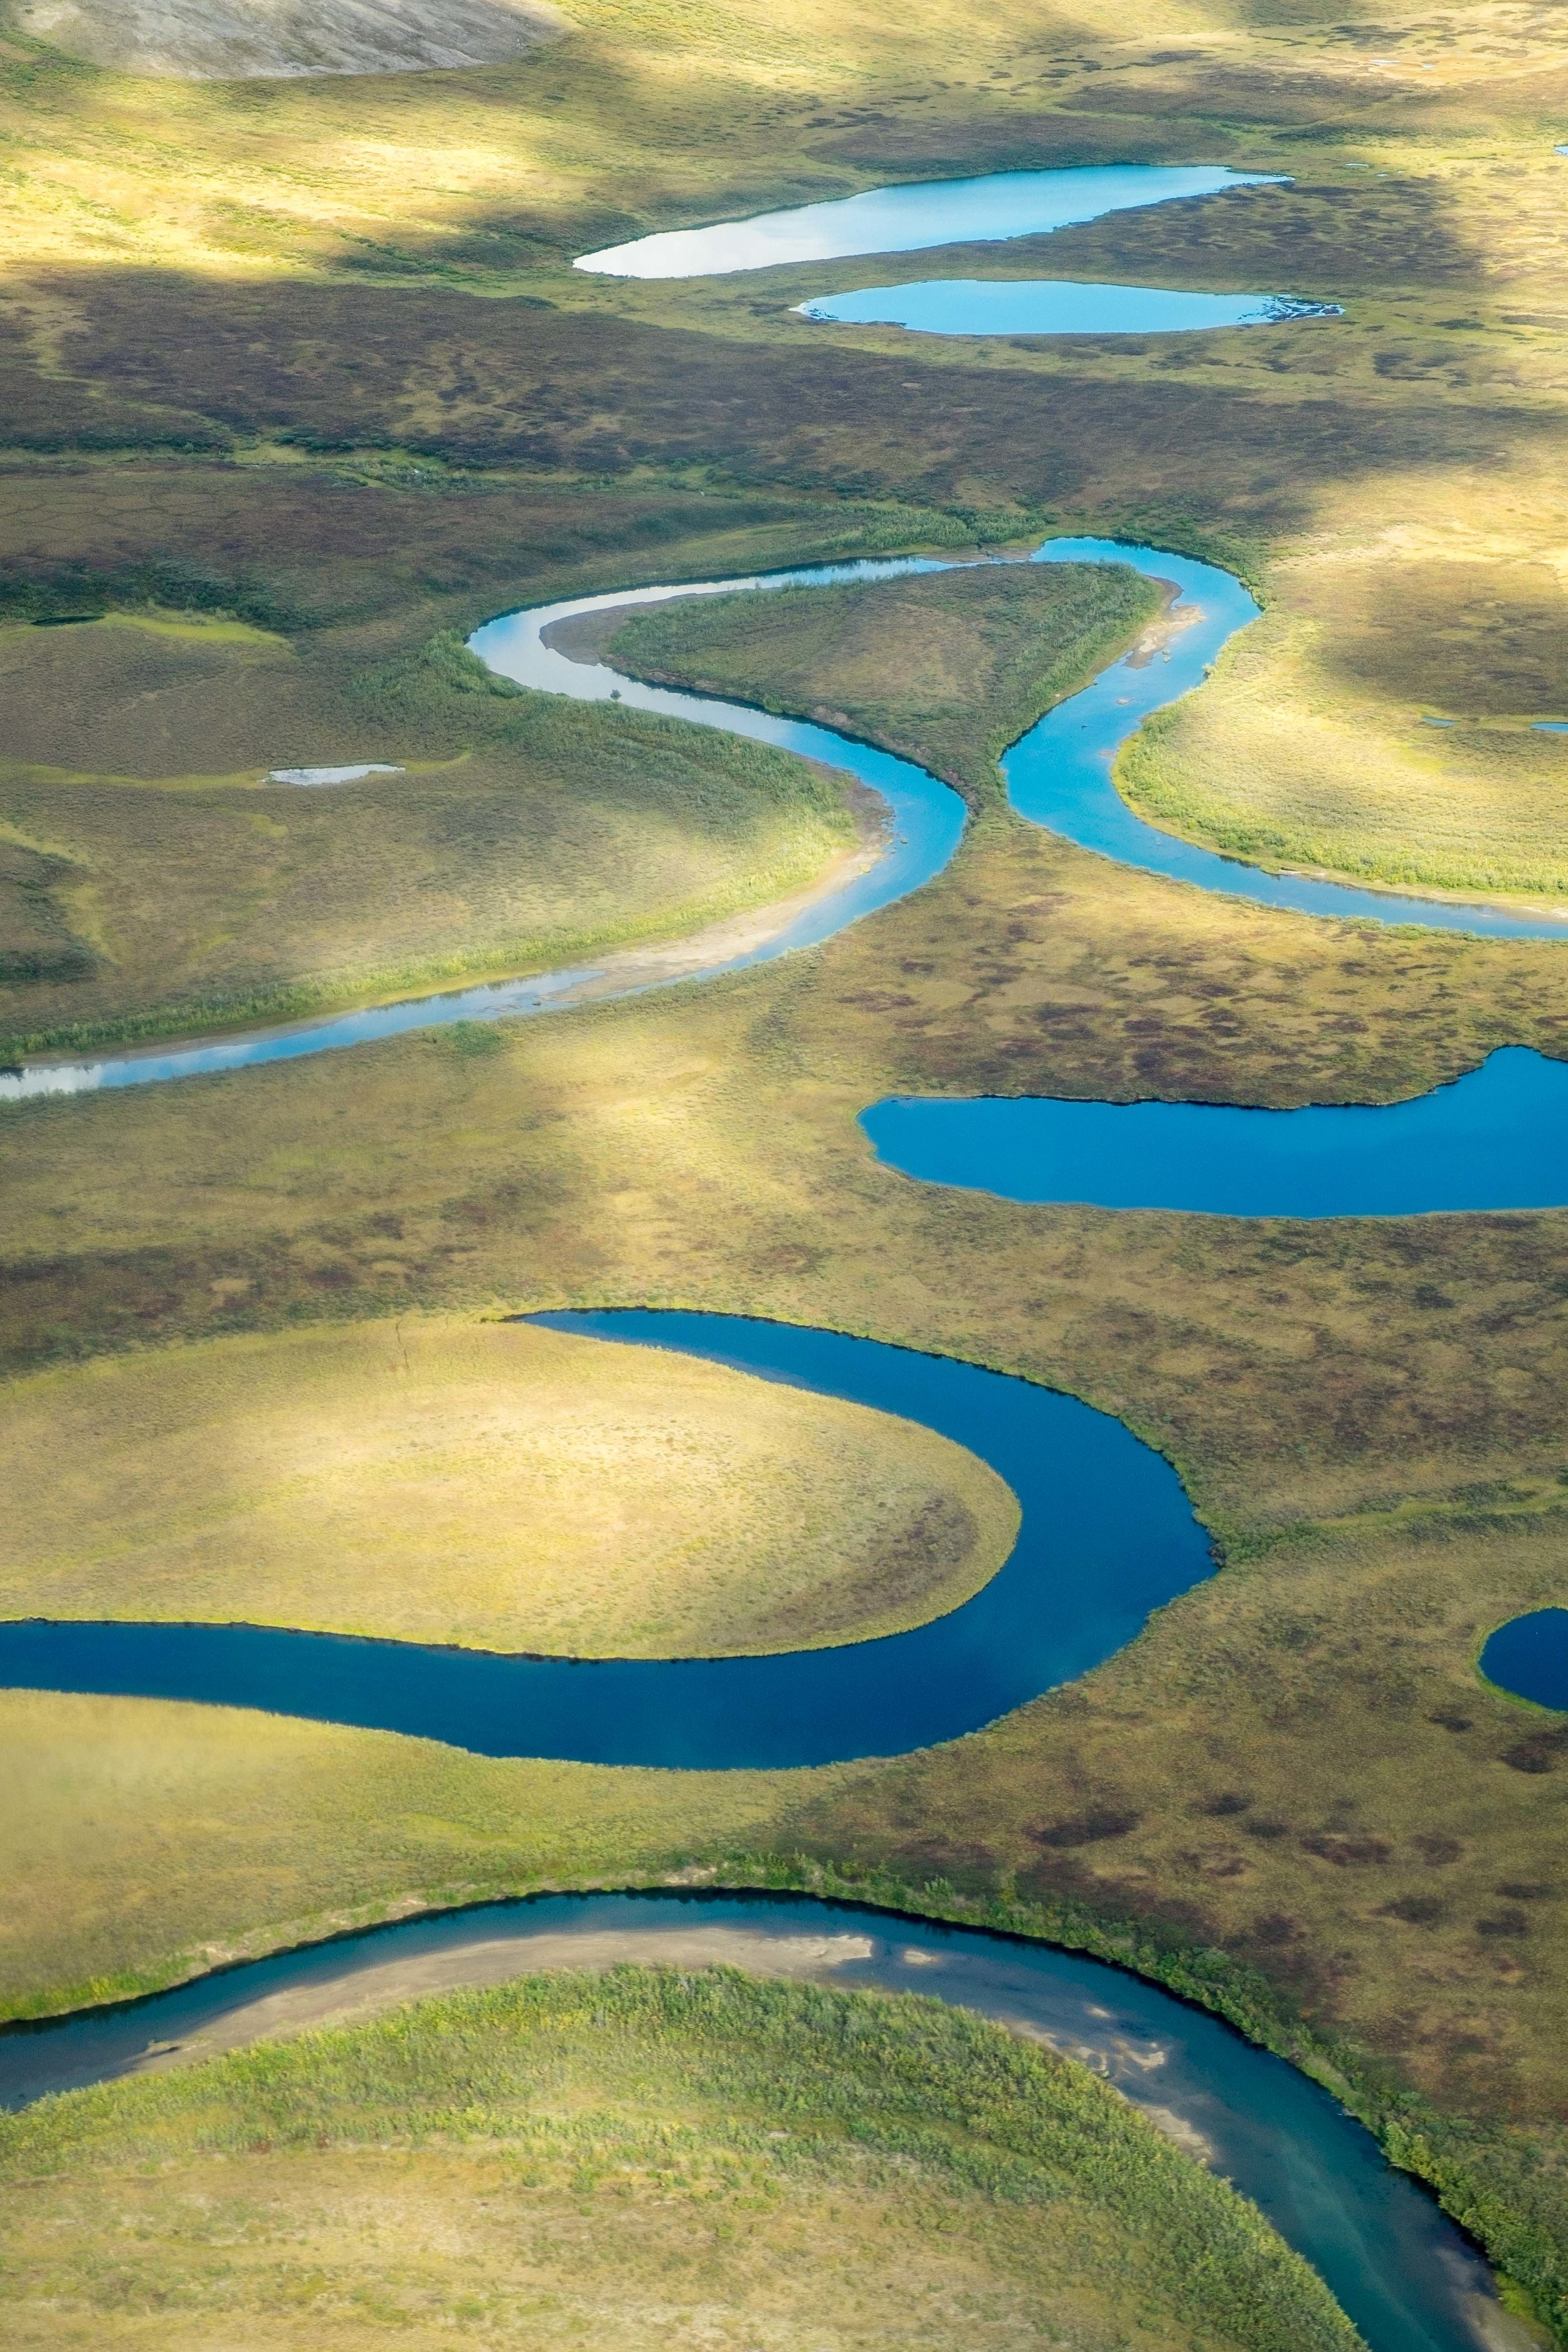 Oxbow river bends.